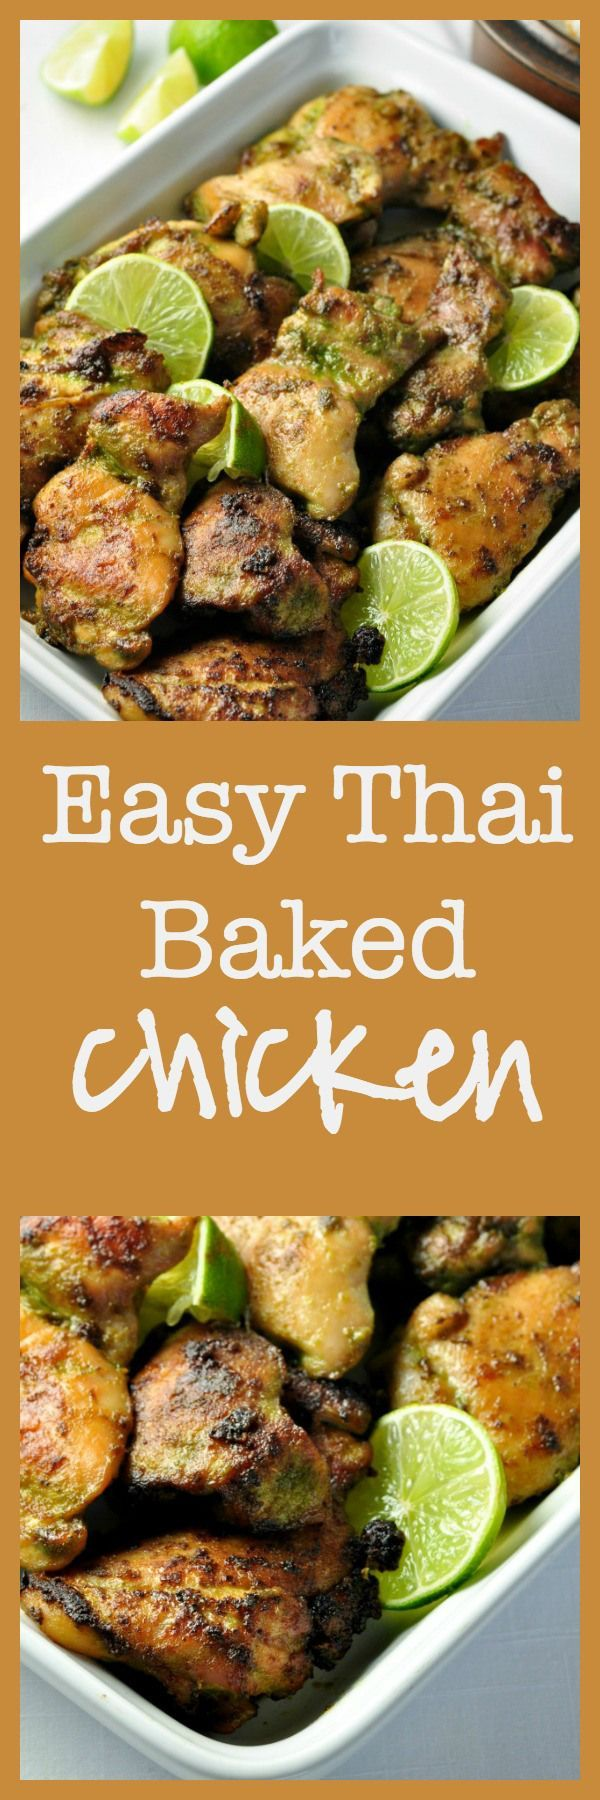 Easy thai baked chicken recipe sauces fish and brown for Happy fish and chicken